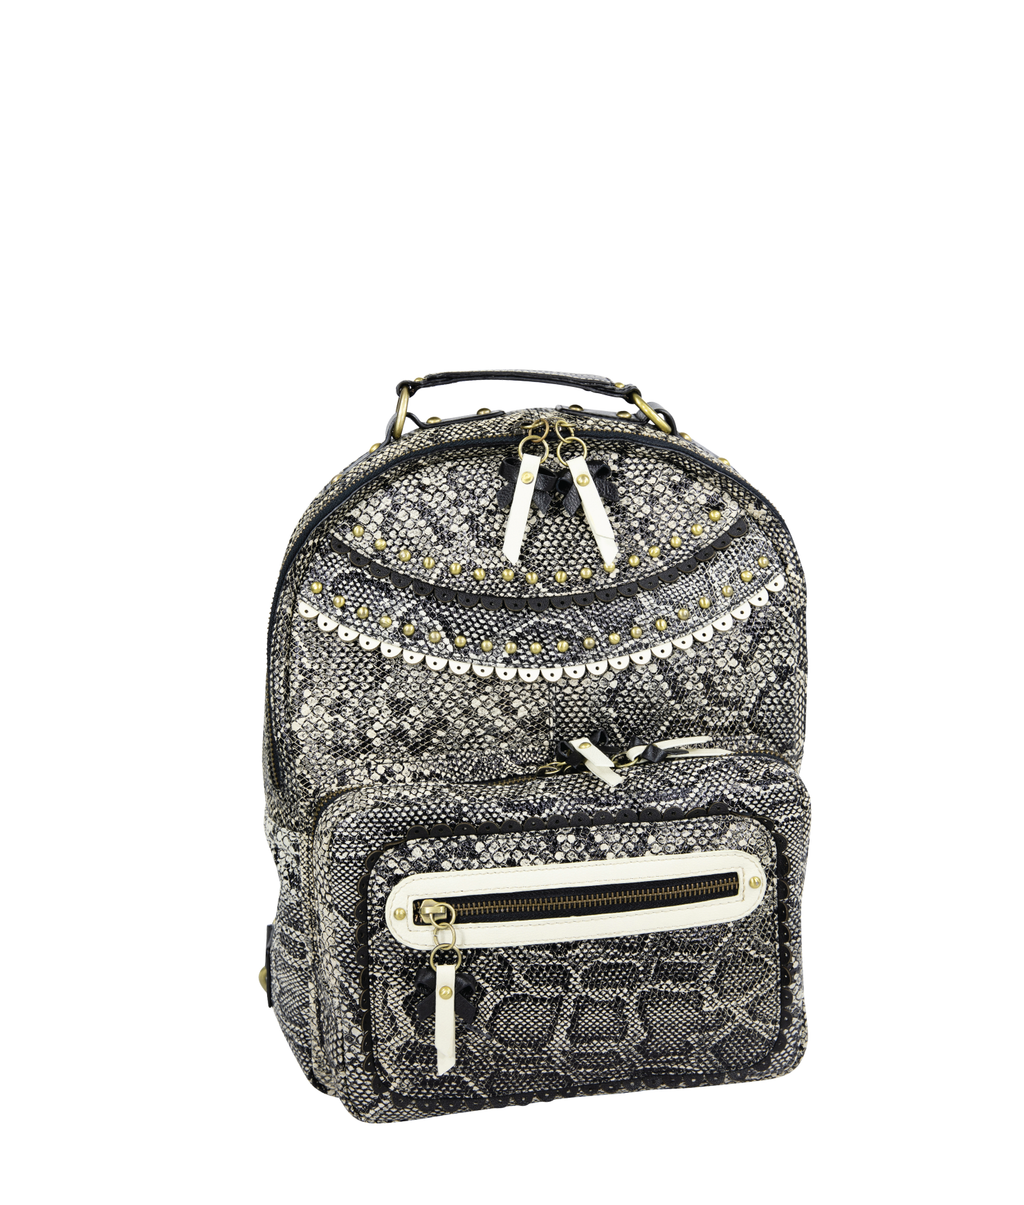 PIPPA Backpack - Moonbeam